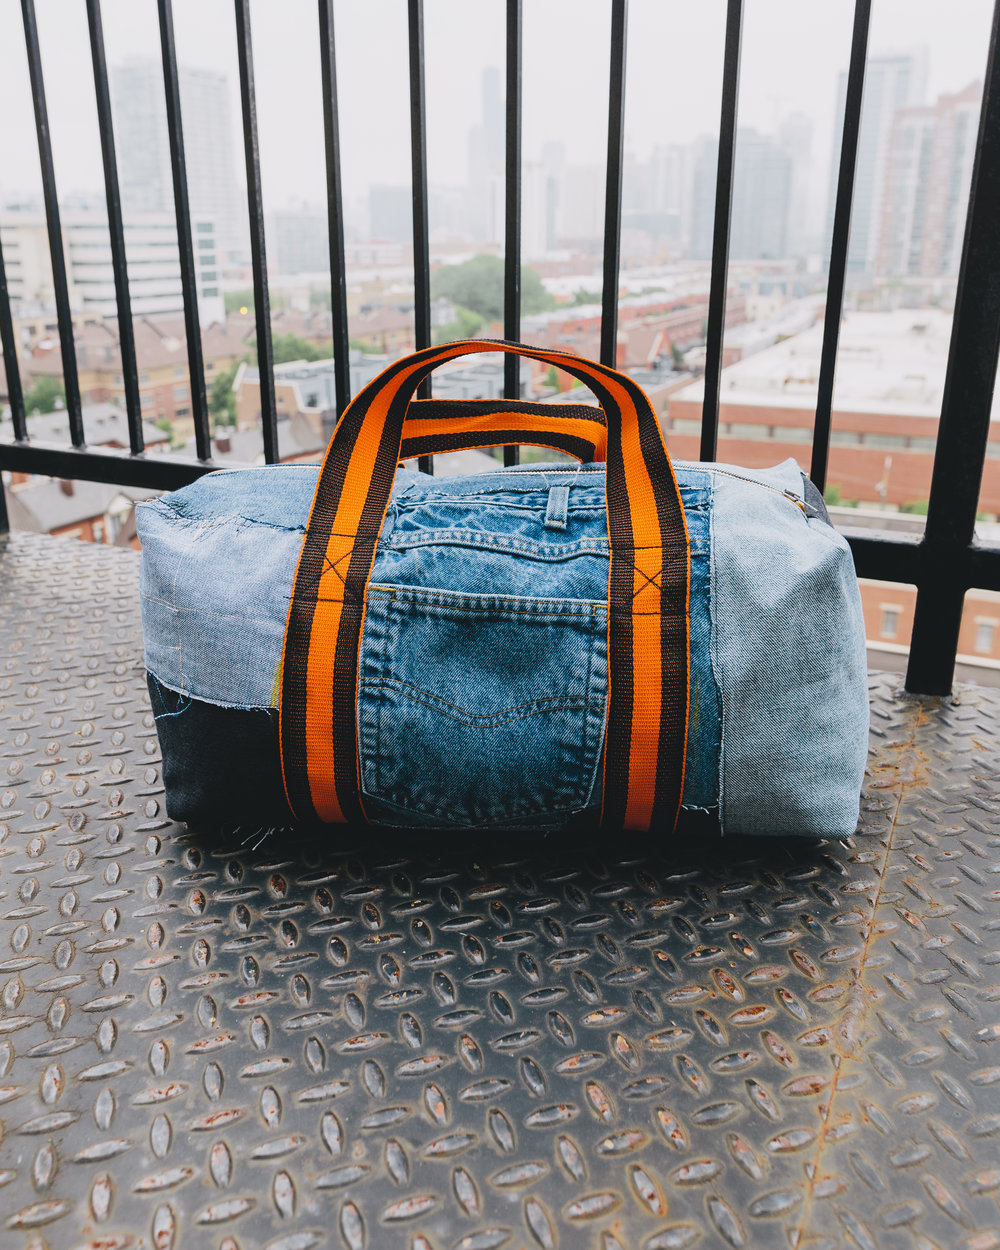 Overnight Patchwork Duffel - The very first bag I made; this was done reusing vintage denim as well as deadstock vintage hardware and straps